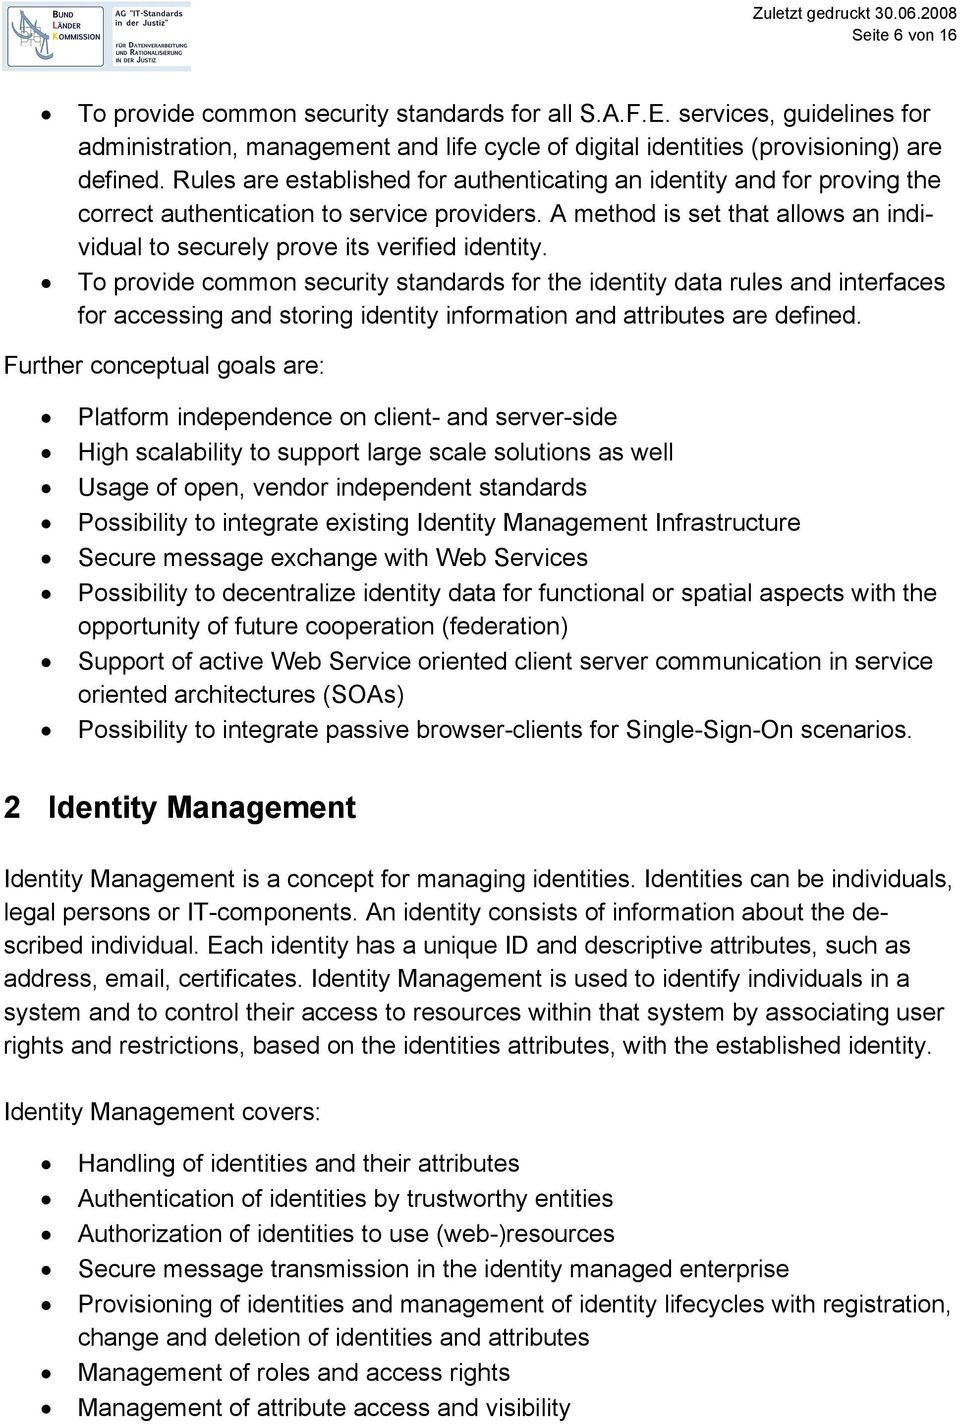 To provide common security standards for the identity data rules and interfaces for accessing and storing identity information and attributes are defined.